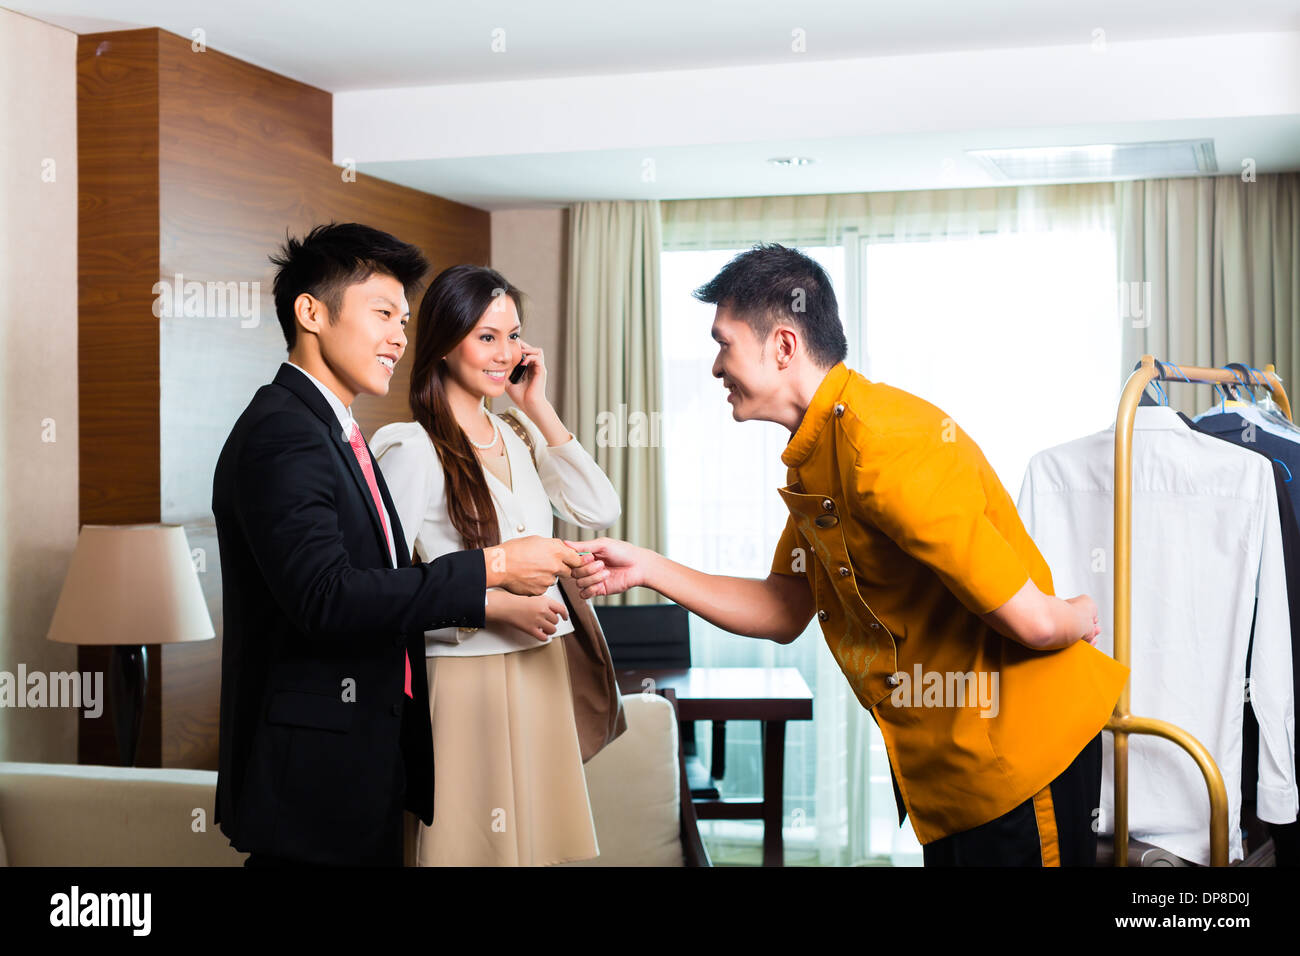 Baggage porter or bellboy or page receiving tip for delivering the suitcase of guests to the hotel room or suite - Stock Image